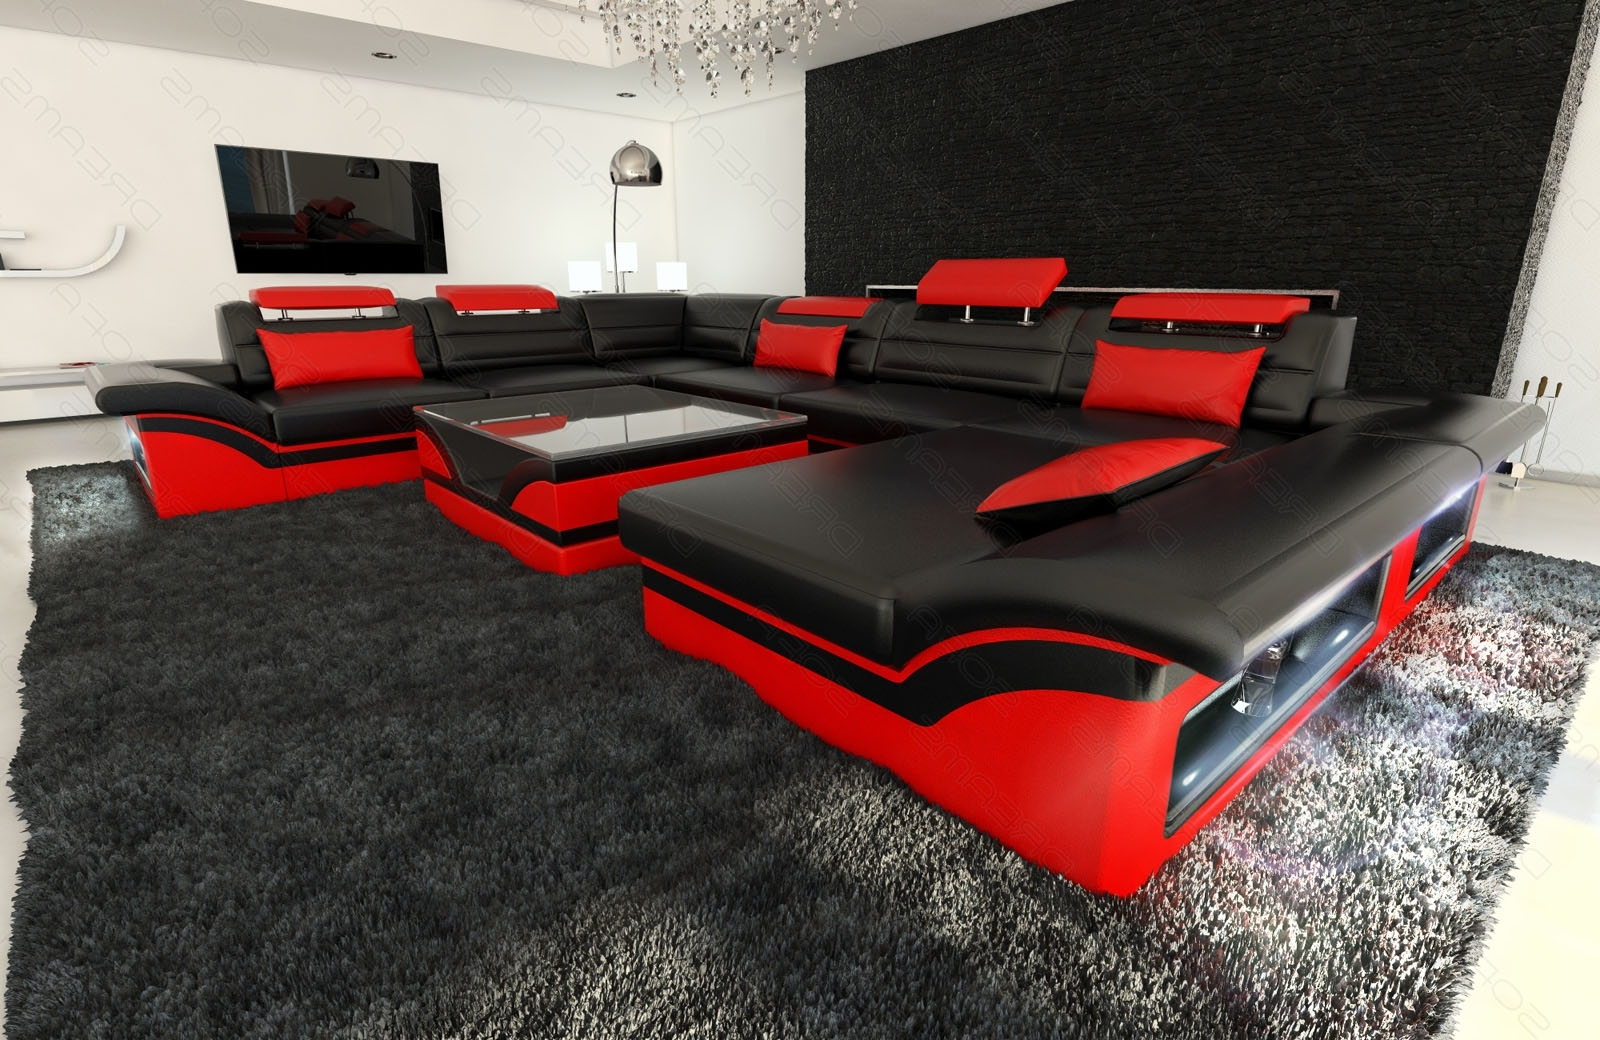 2019 Red And Black Sectional Sofa – Hotelsbacau Throughout Red Black Sectional Sofas (View 16 of 20)